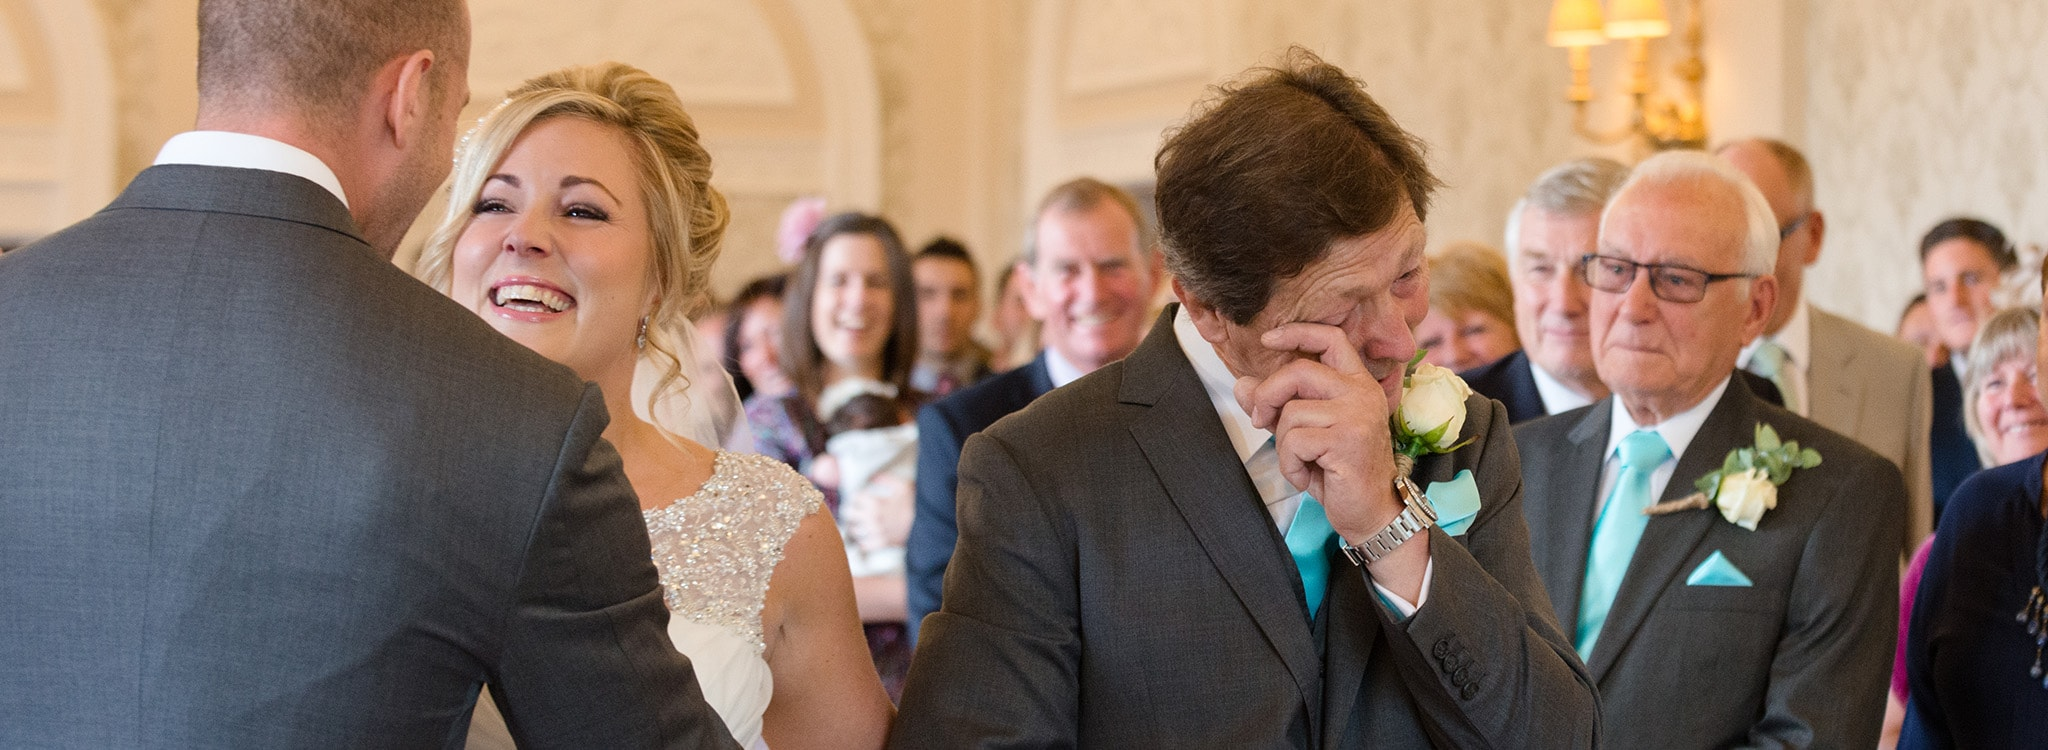 Two reactions in one wedding photo